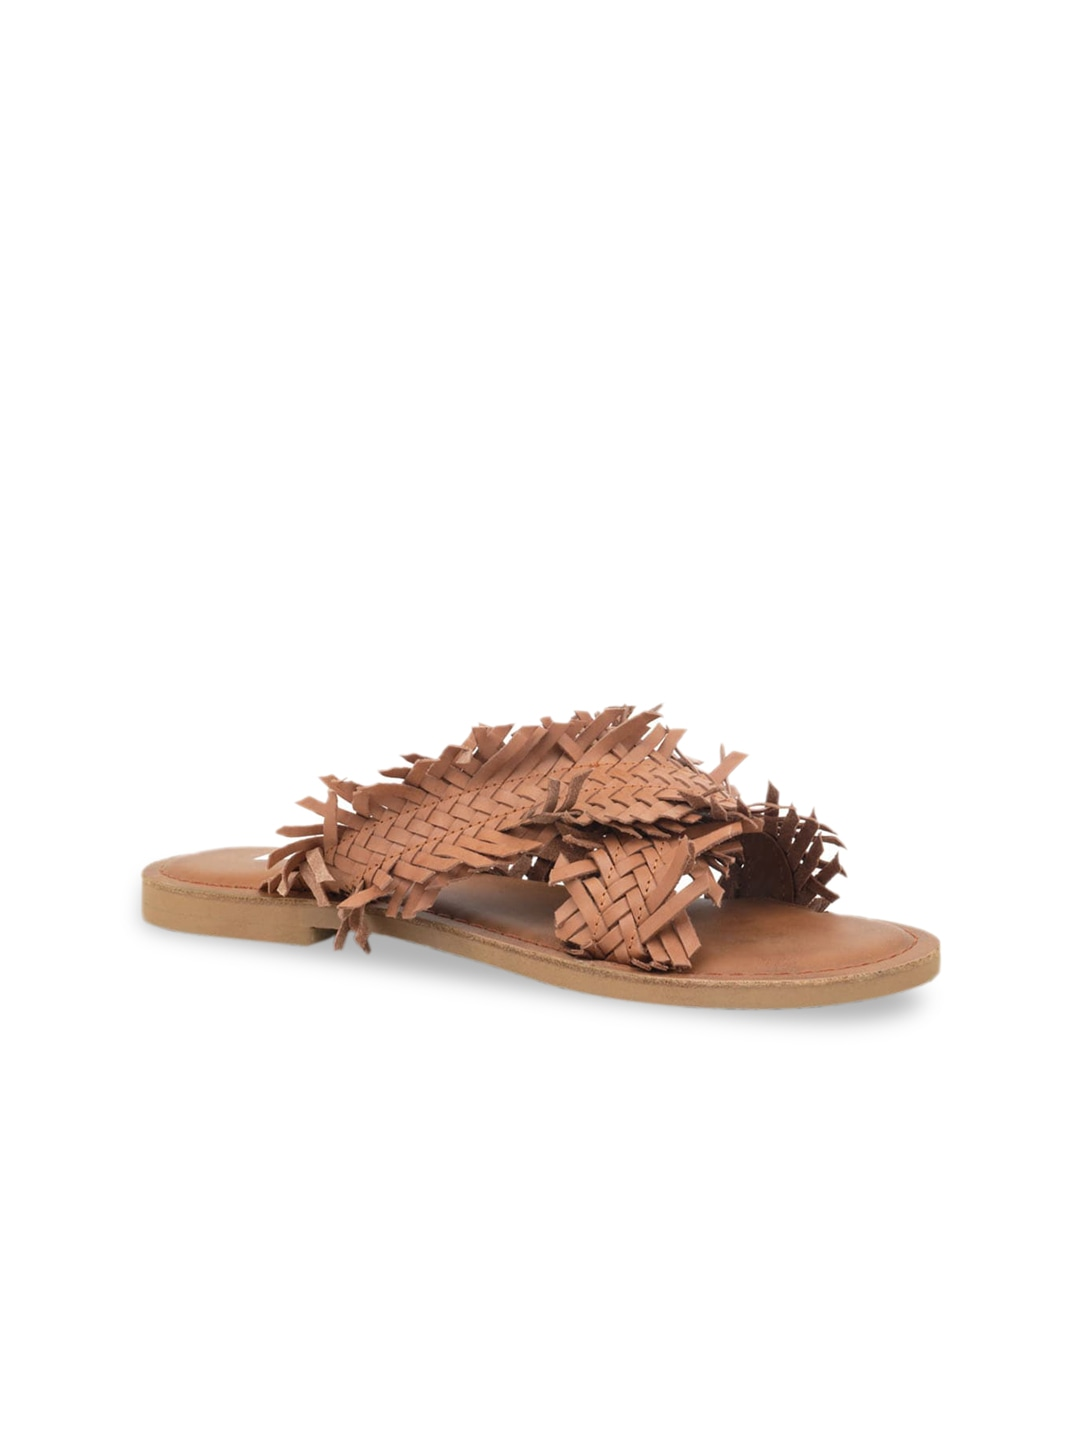 Tan Solid Leather Open Toe Flats